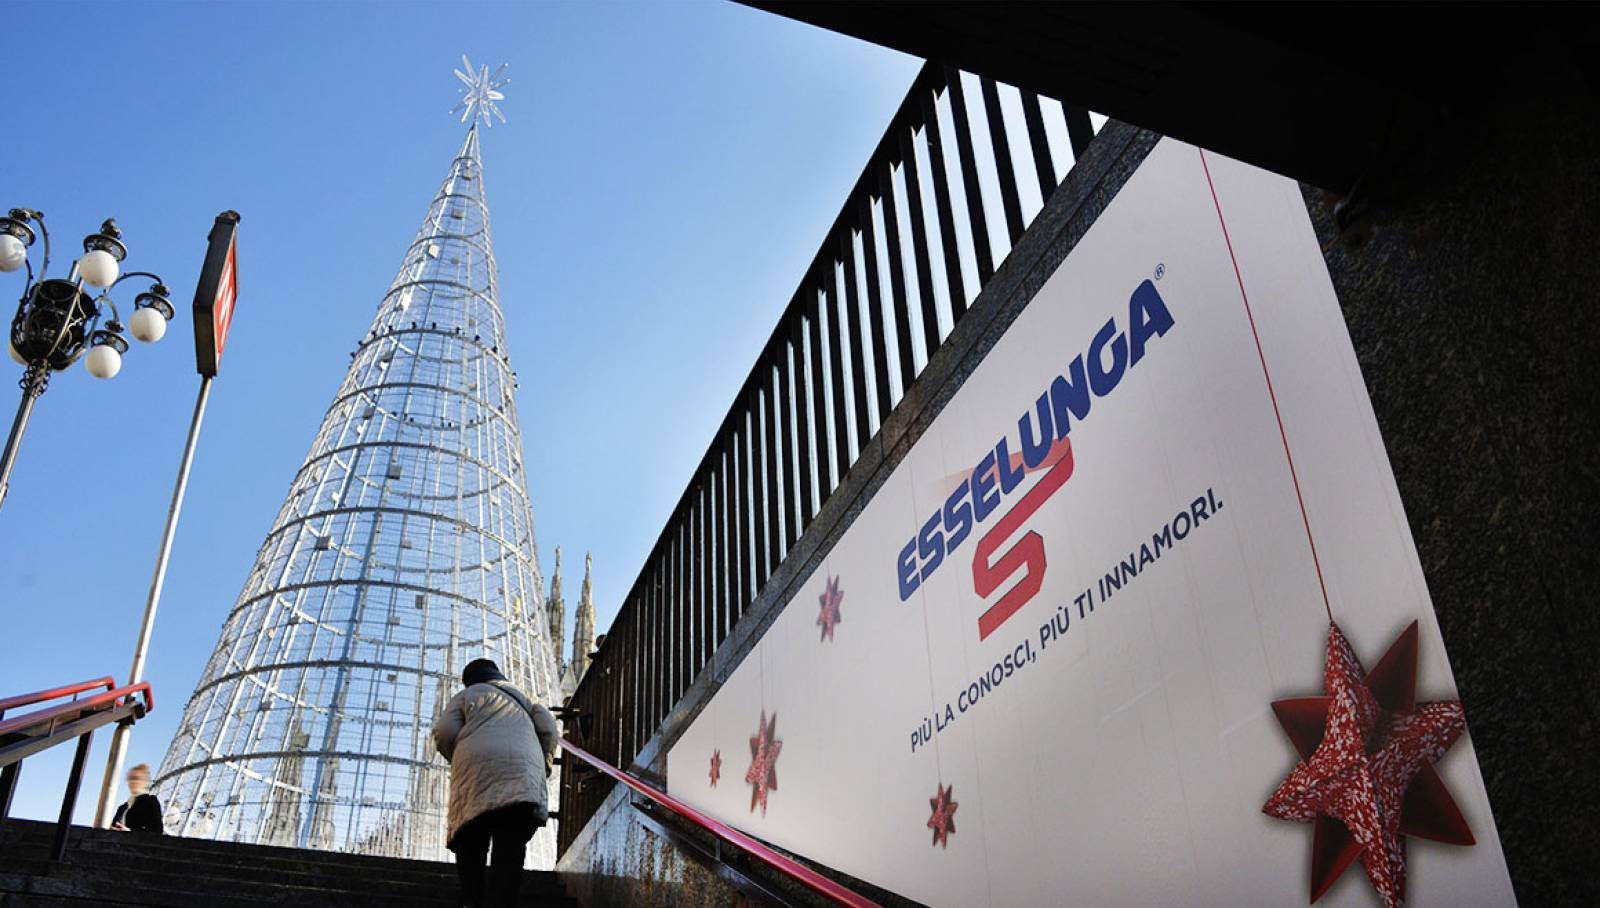 IGPDecaux Christmas Tree 2019 for Esselunga in Milan